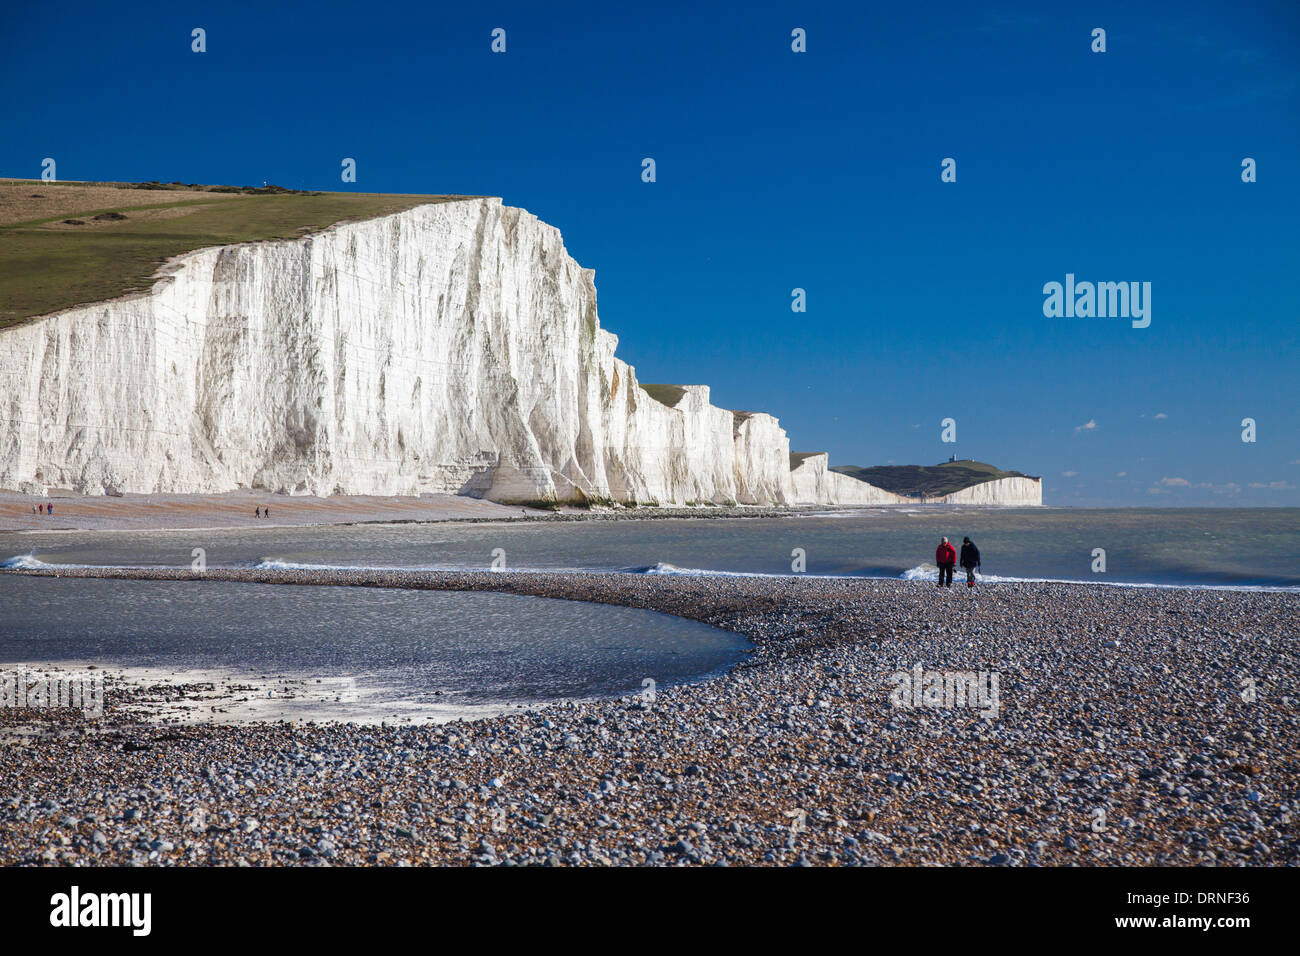 Couple walking beneath the Seven Sisters, Cuckmere Haven Beach, County Sussex, England. Stock Photo